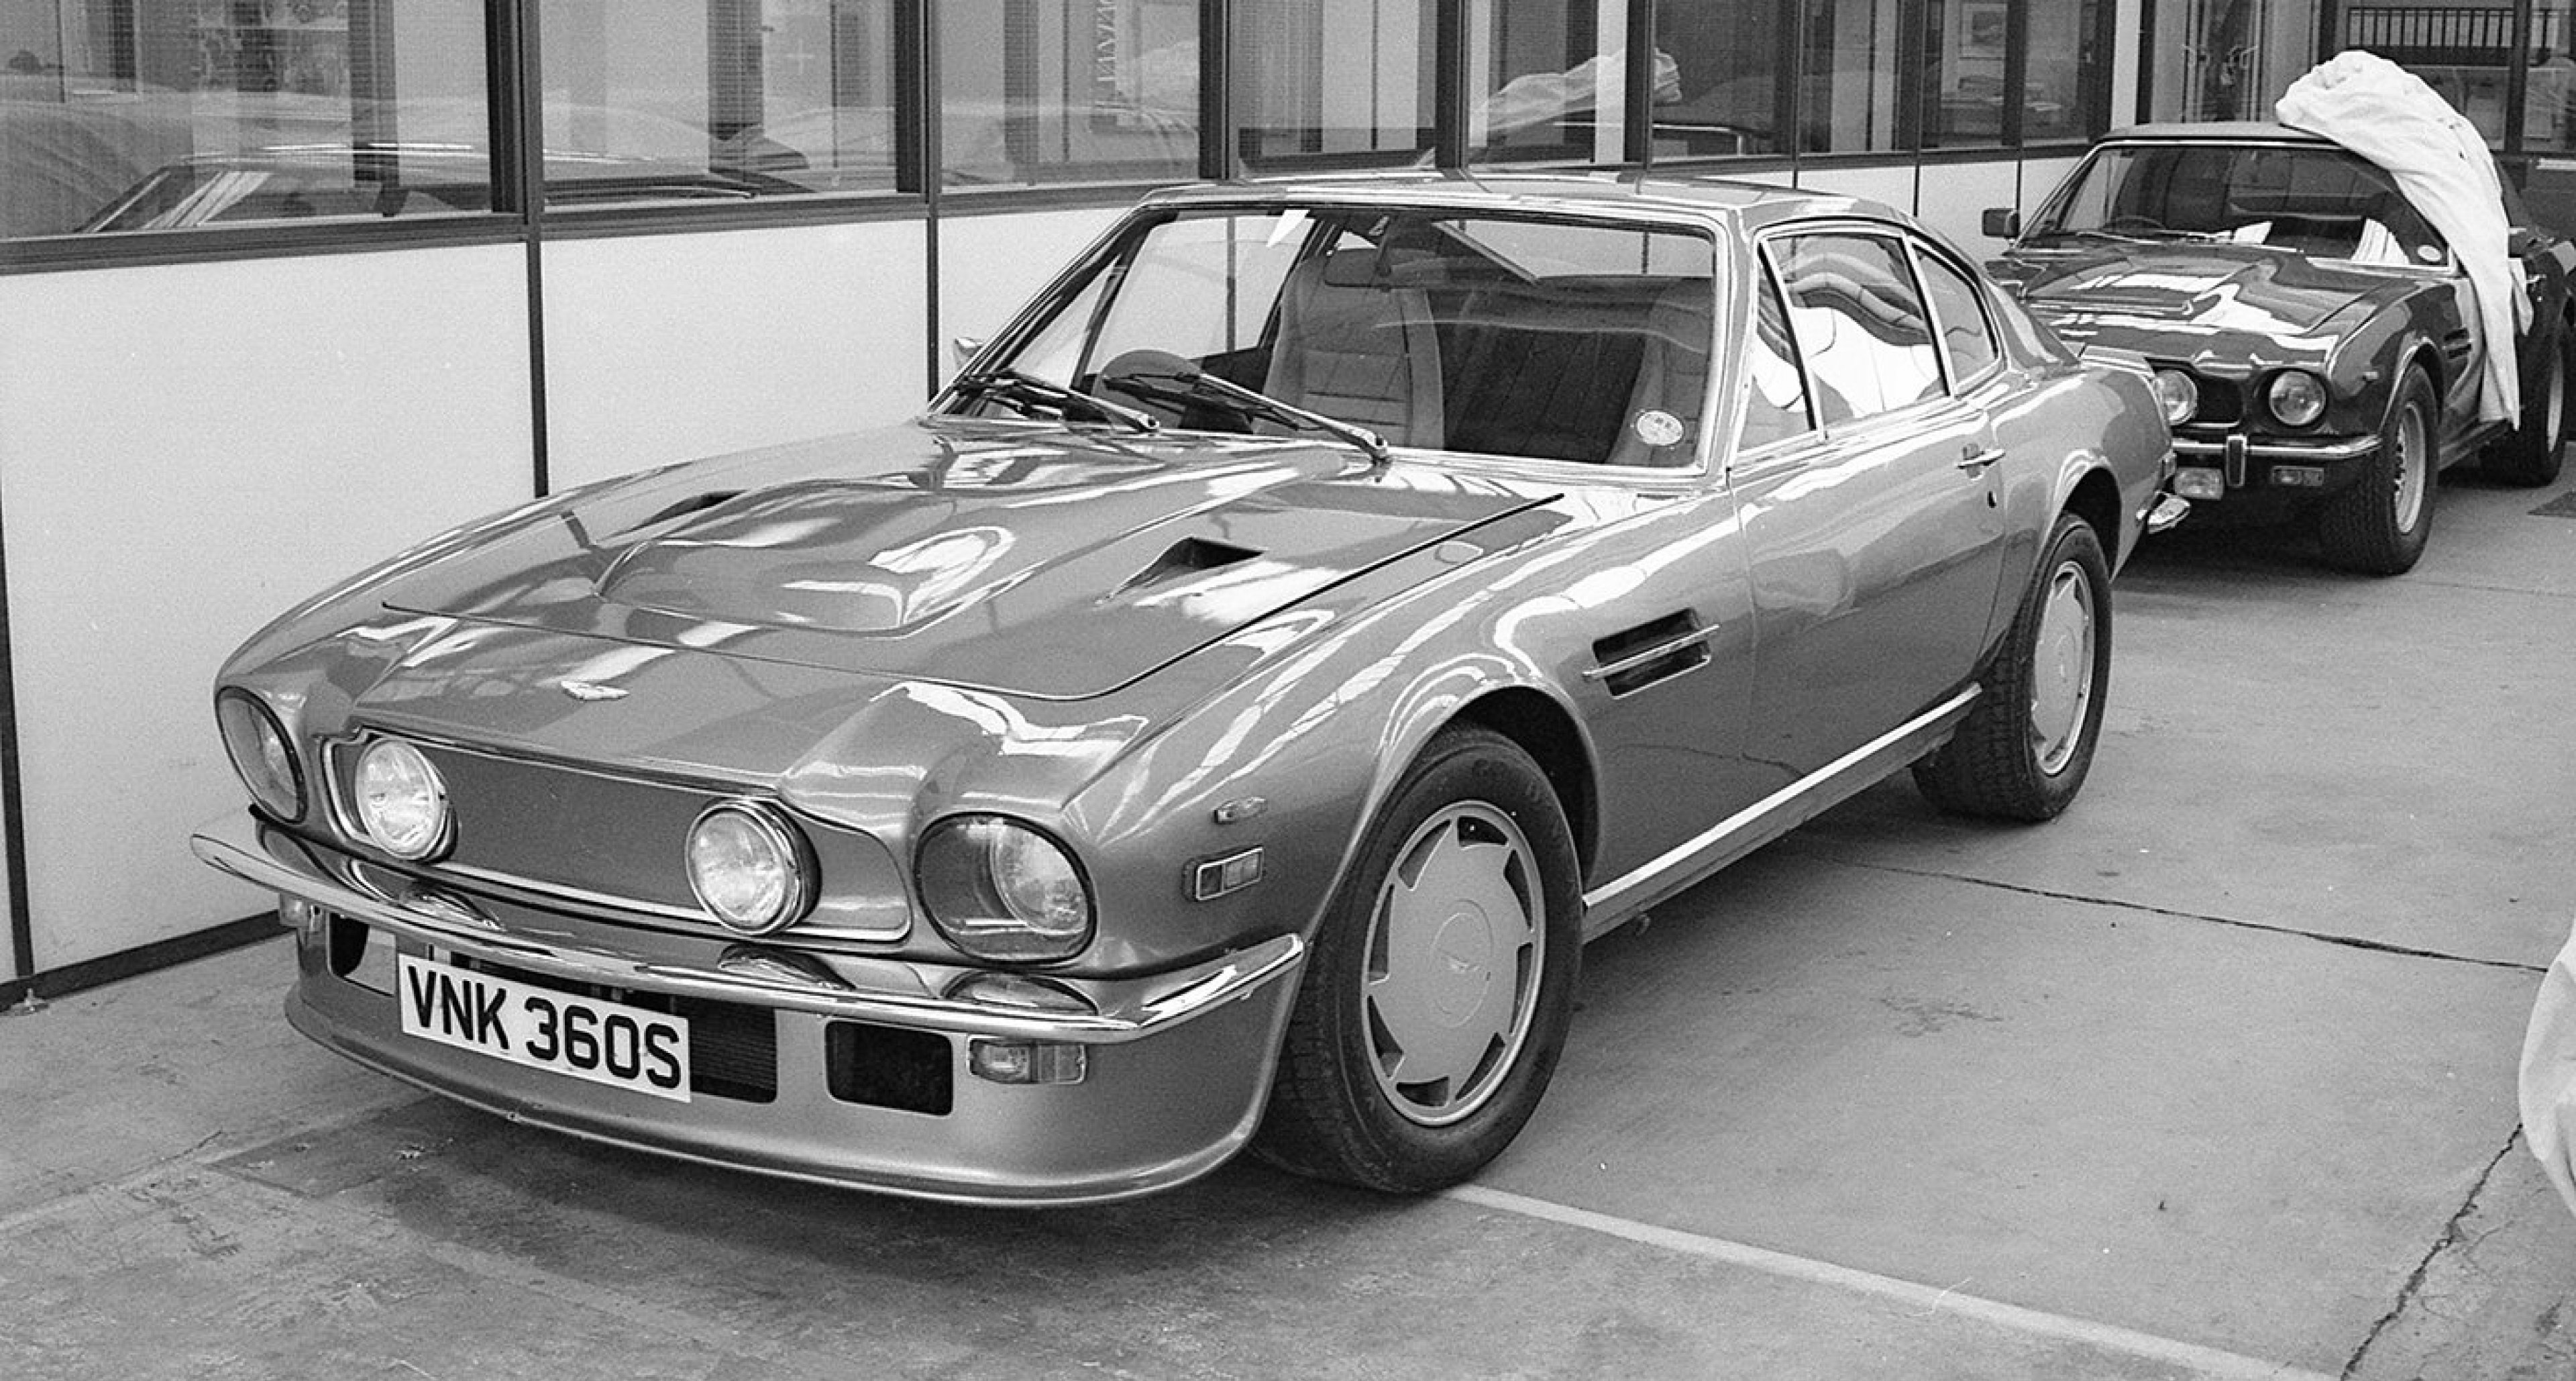 This very special V8 Vantage, known as VNK360S after its registration, was employed by Aston Martin Lagonda as a factory prototype and trialled almost every significant enhancement of the model. It was subsequently used as the mule for the V8 Zagato.